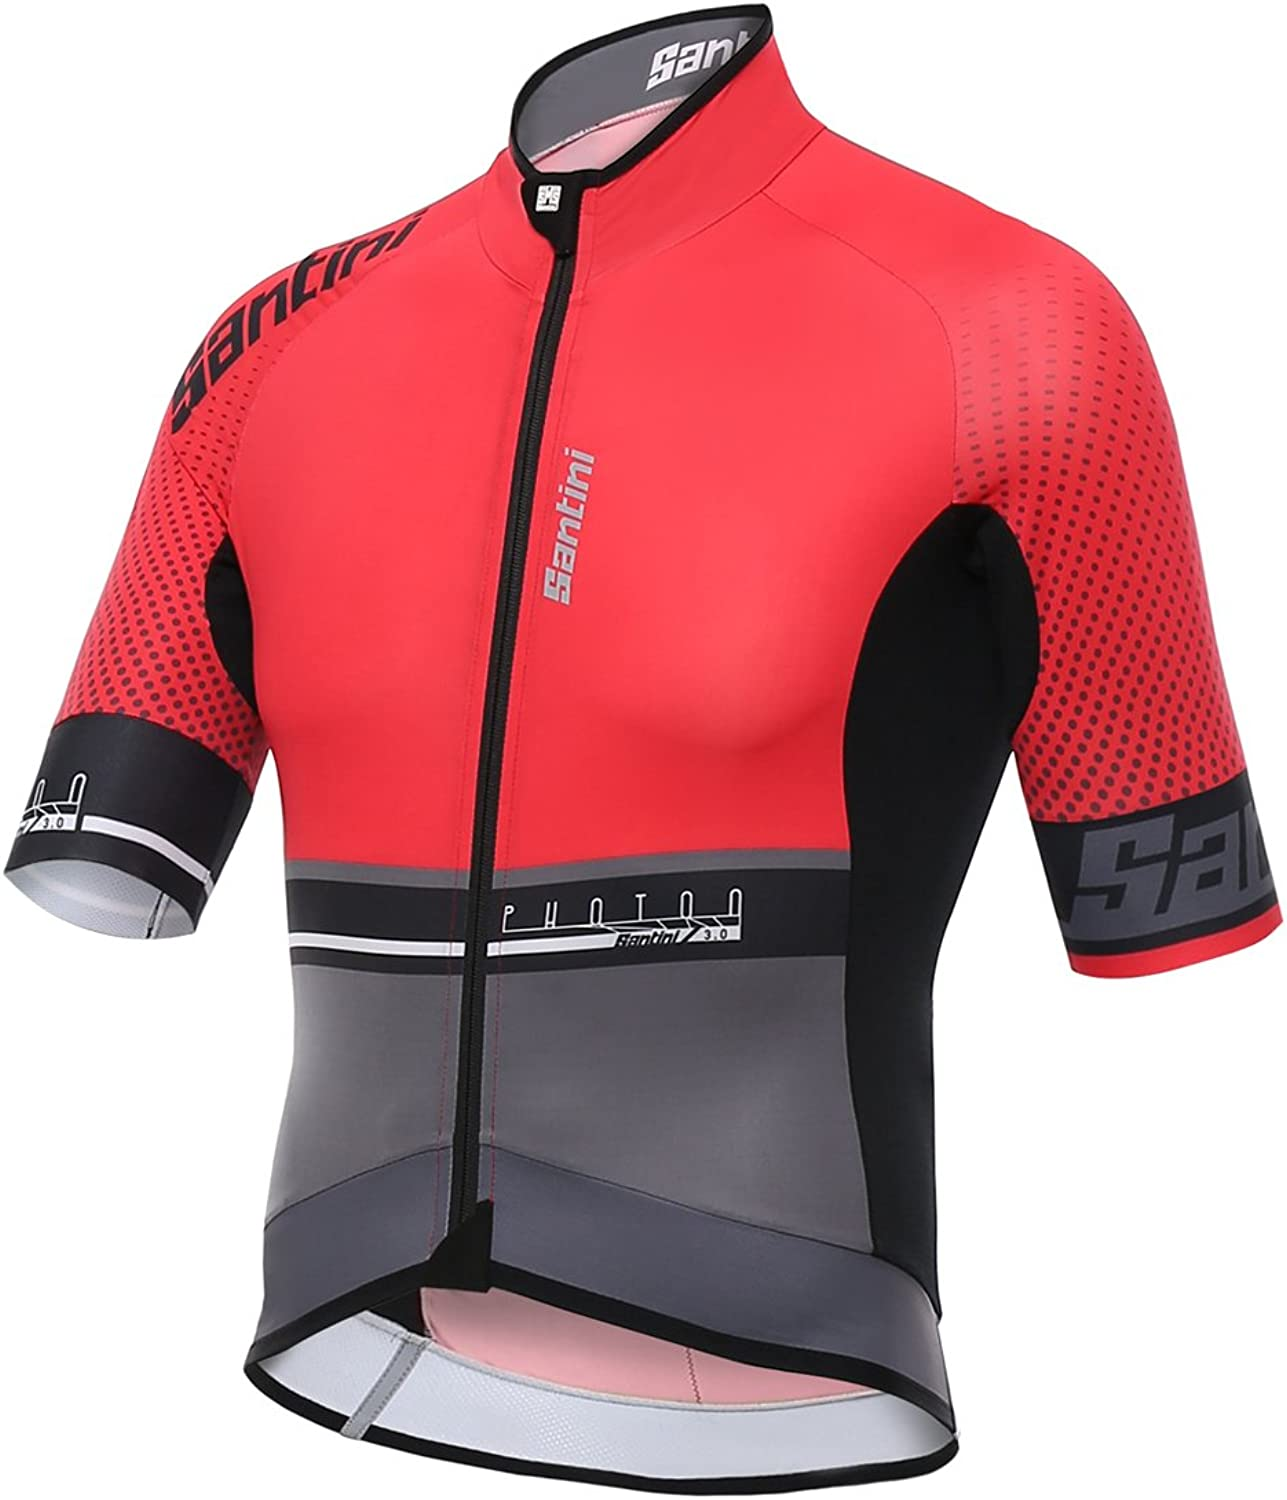 Santini Red 2017 Photon 3.0 Short Sleeved Cycling Jersey